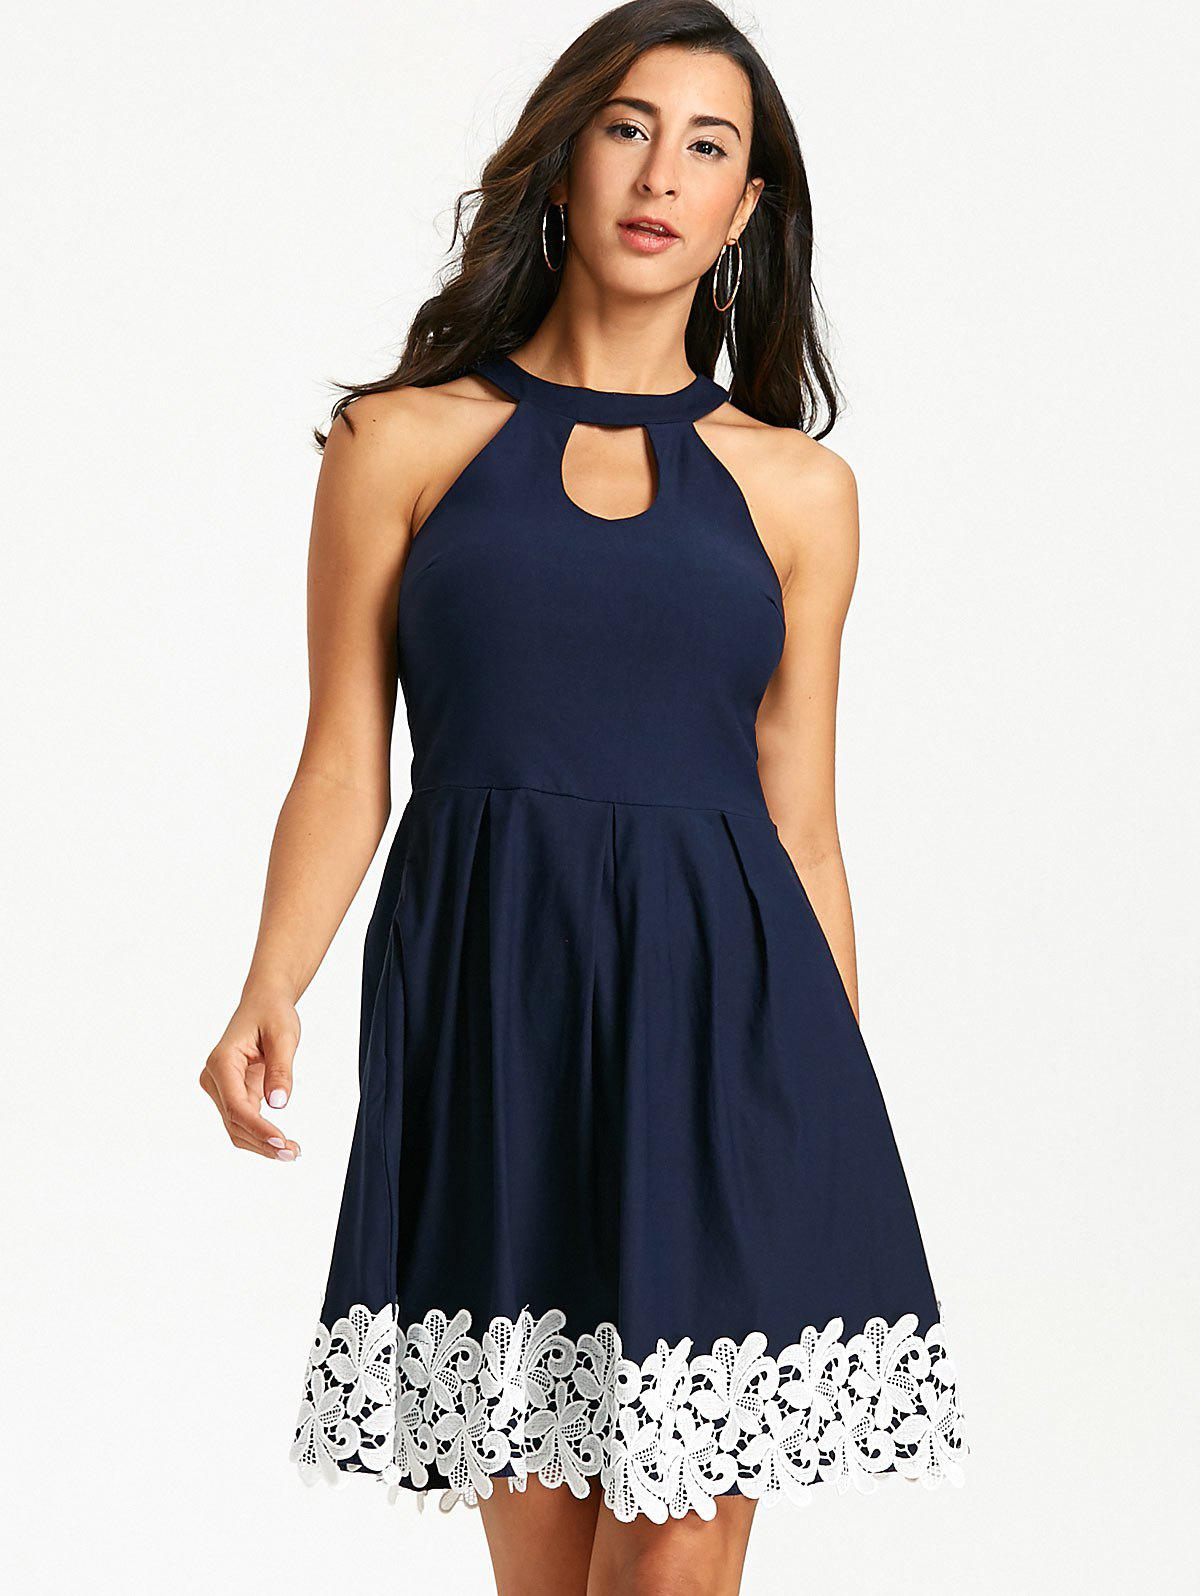 Floral Crochet Sleeveless Keyhole Skater Dress - PURPLISH BLUE M